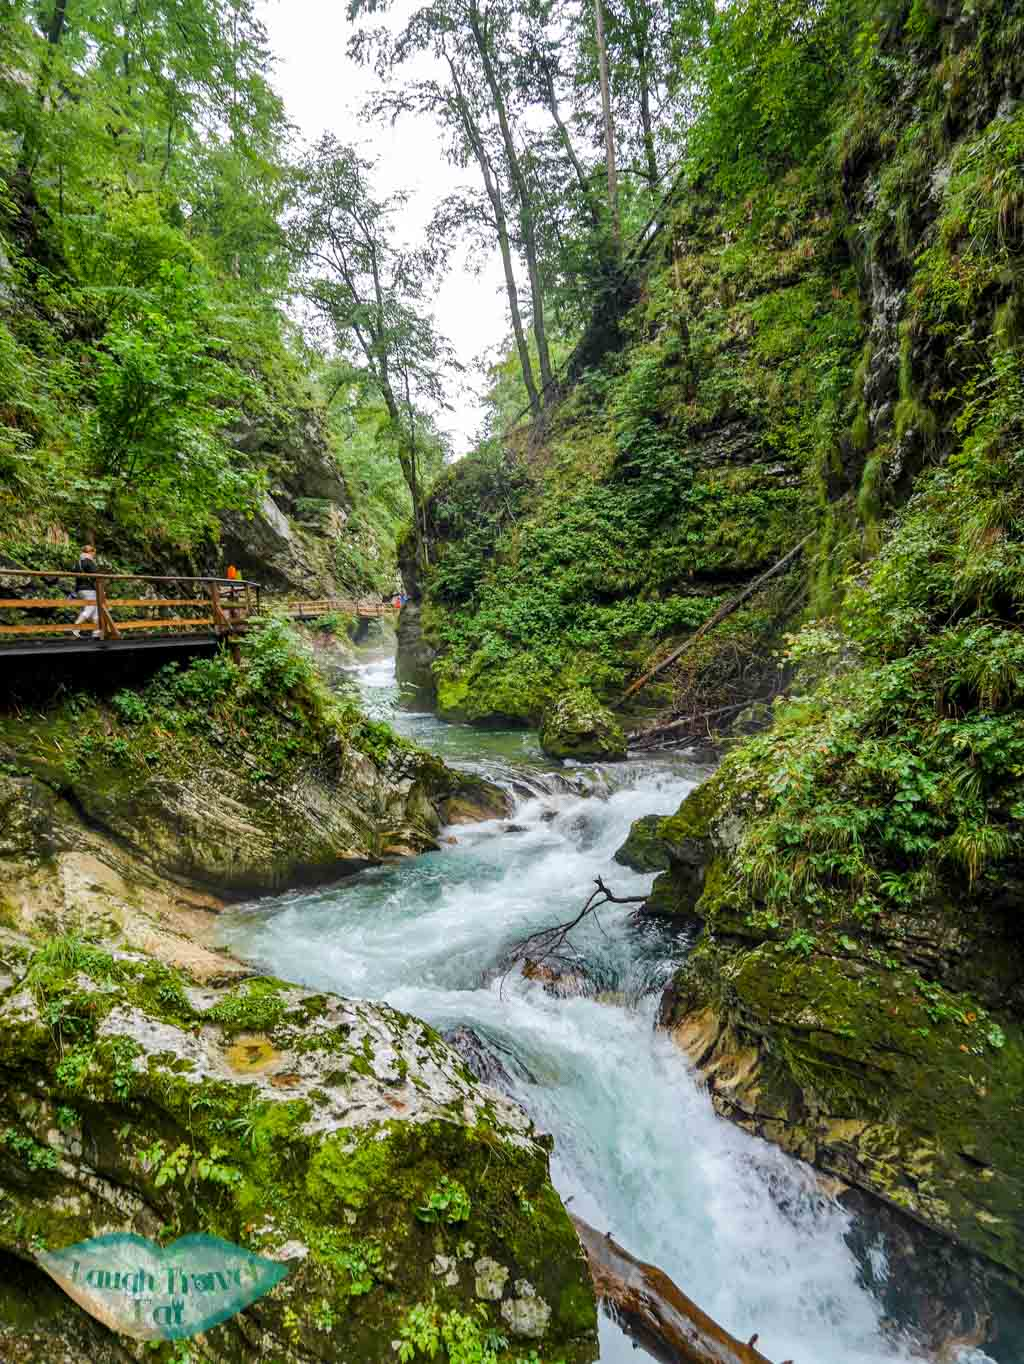 Vintgar-gorge-river-with-the-winding-hiking-trail-by-one-of-its-bank-Vintgar-Gorge-Slovenia-laugh-travel-eat